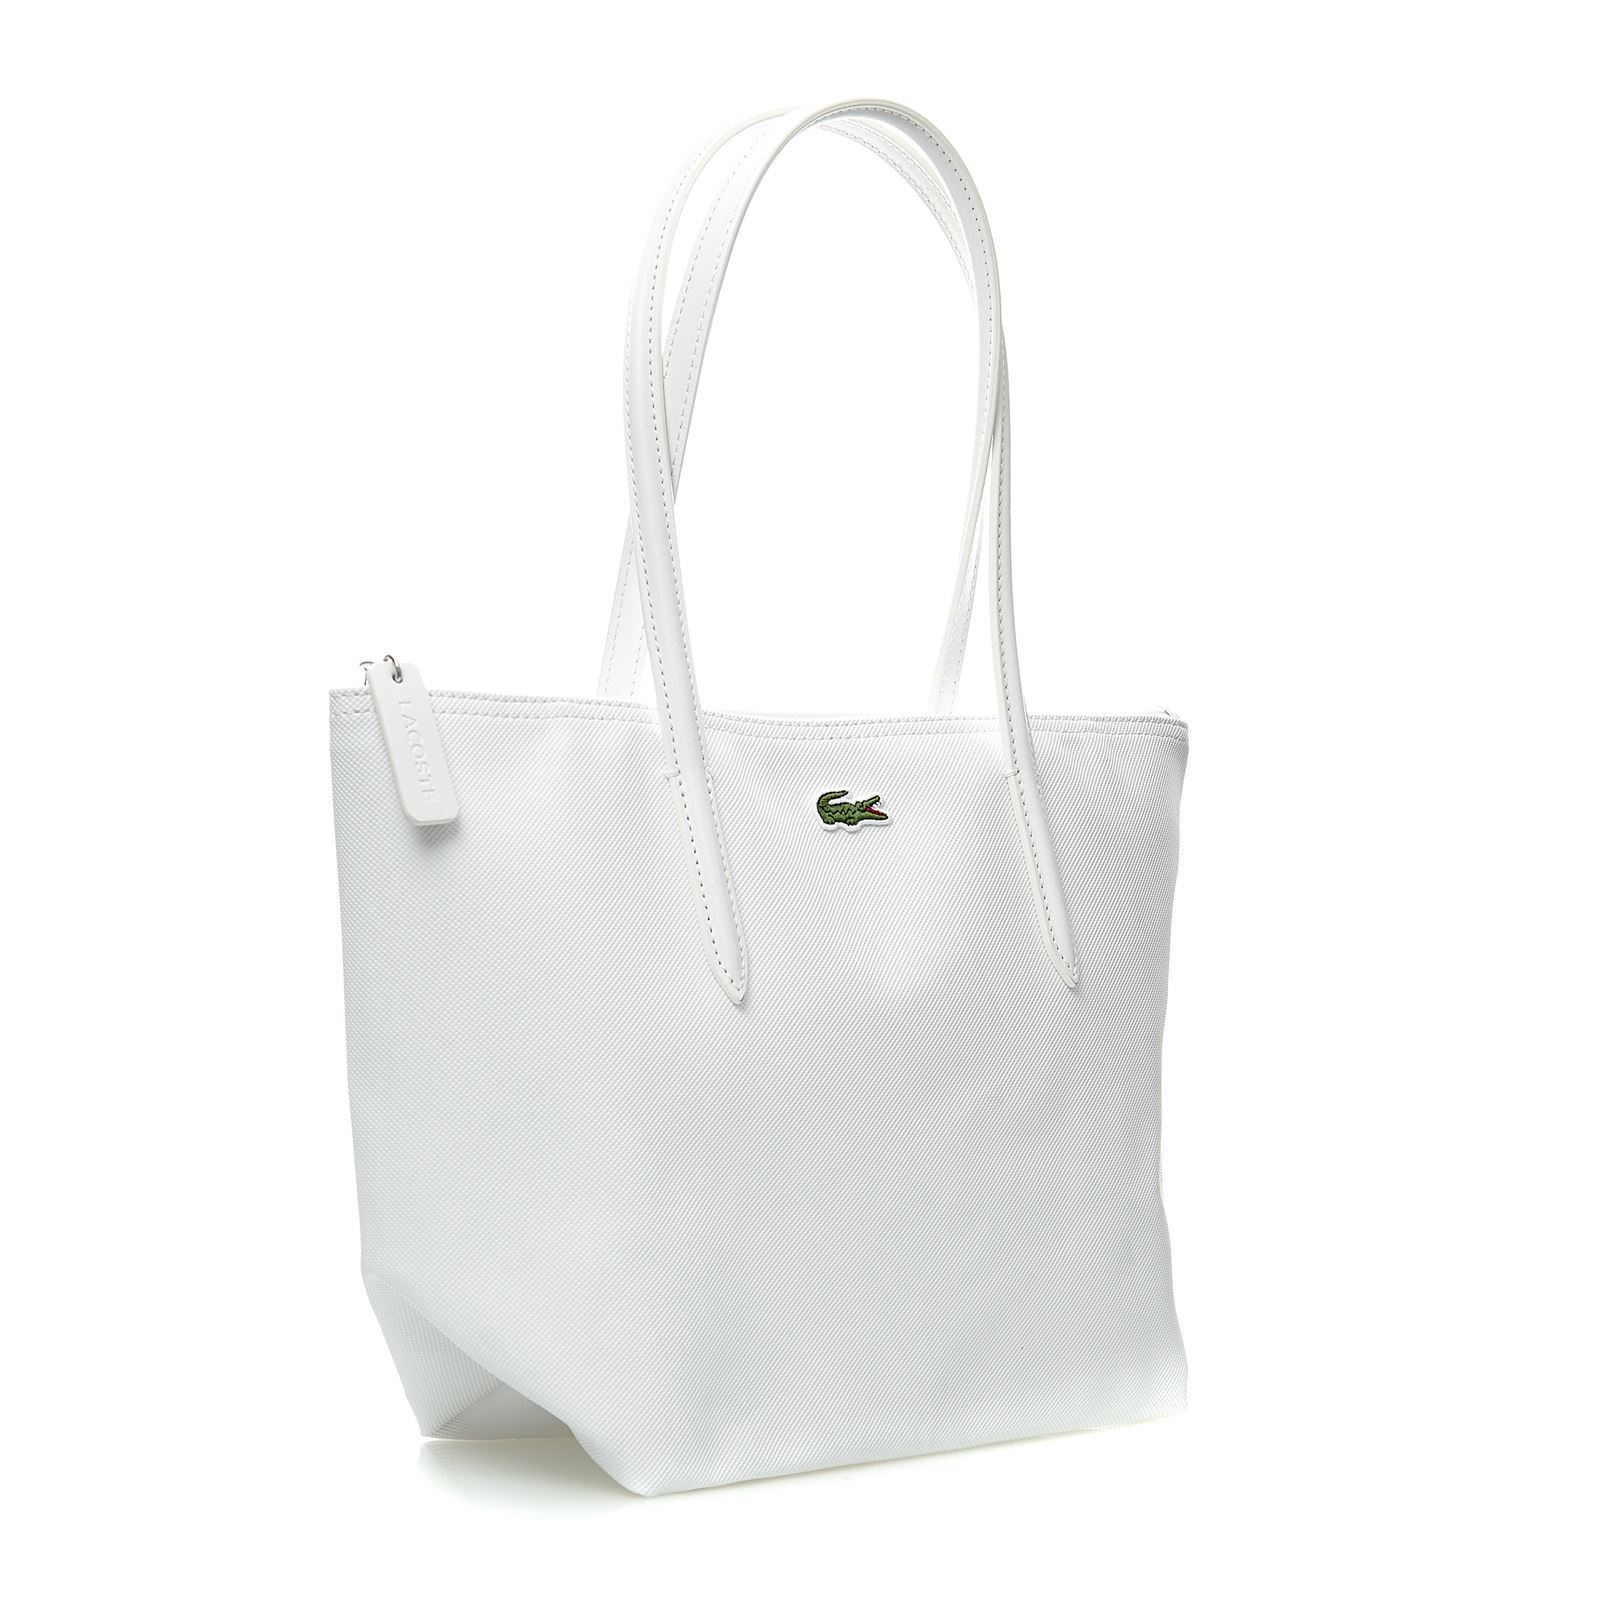 67d3f337310 Cabas Blanc Brandalley Lacoste Brandalley Cabas Blanc Sac Sac Lacoste  Lacoste Sac ExYwqz8U